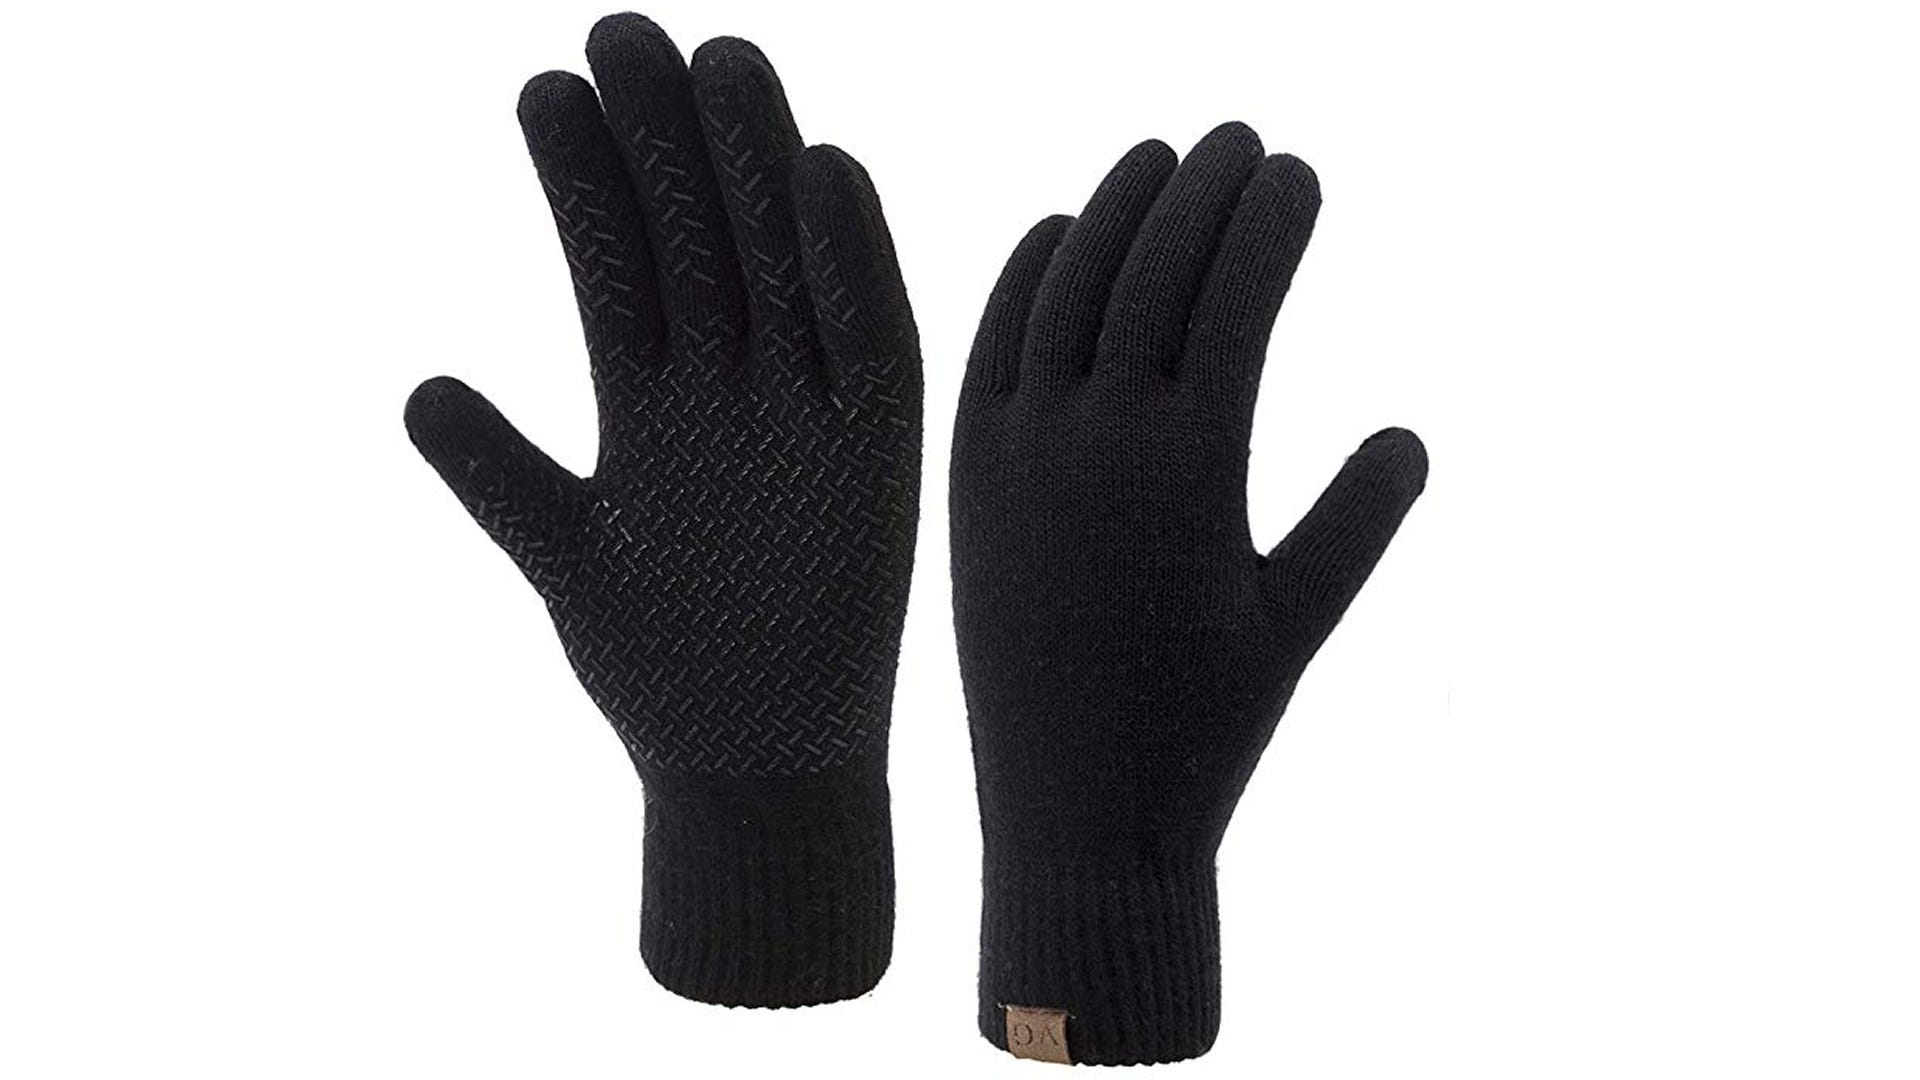 A pair of black ViGrace Winter Touchscreen Gloves.